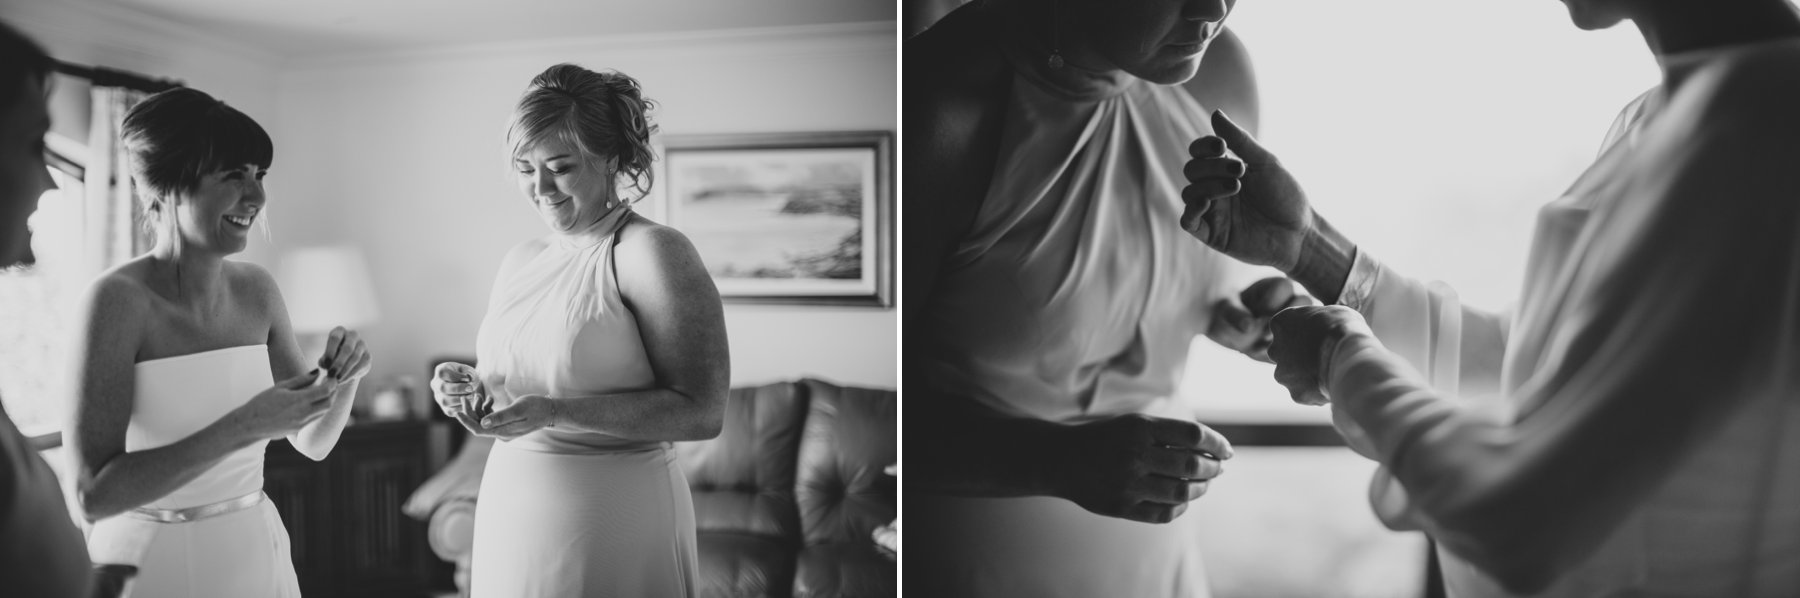 editorial-giantscauseway-weddings_0272